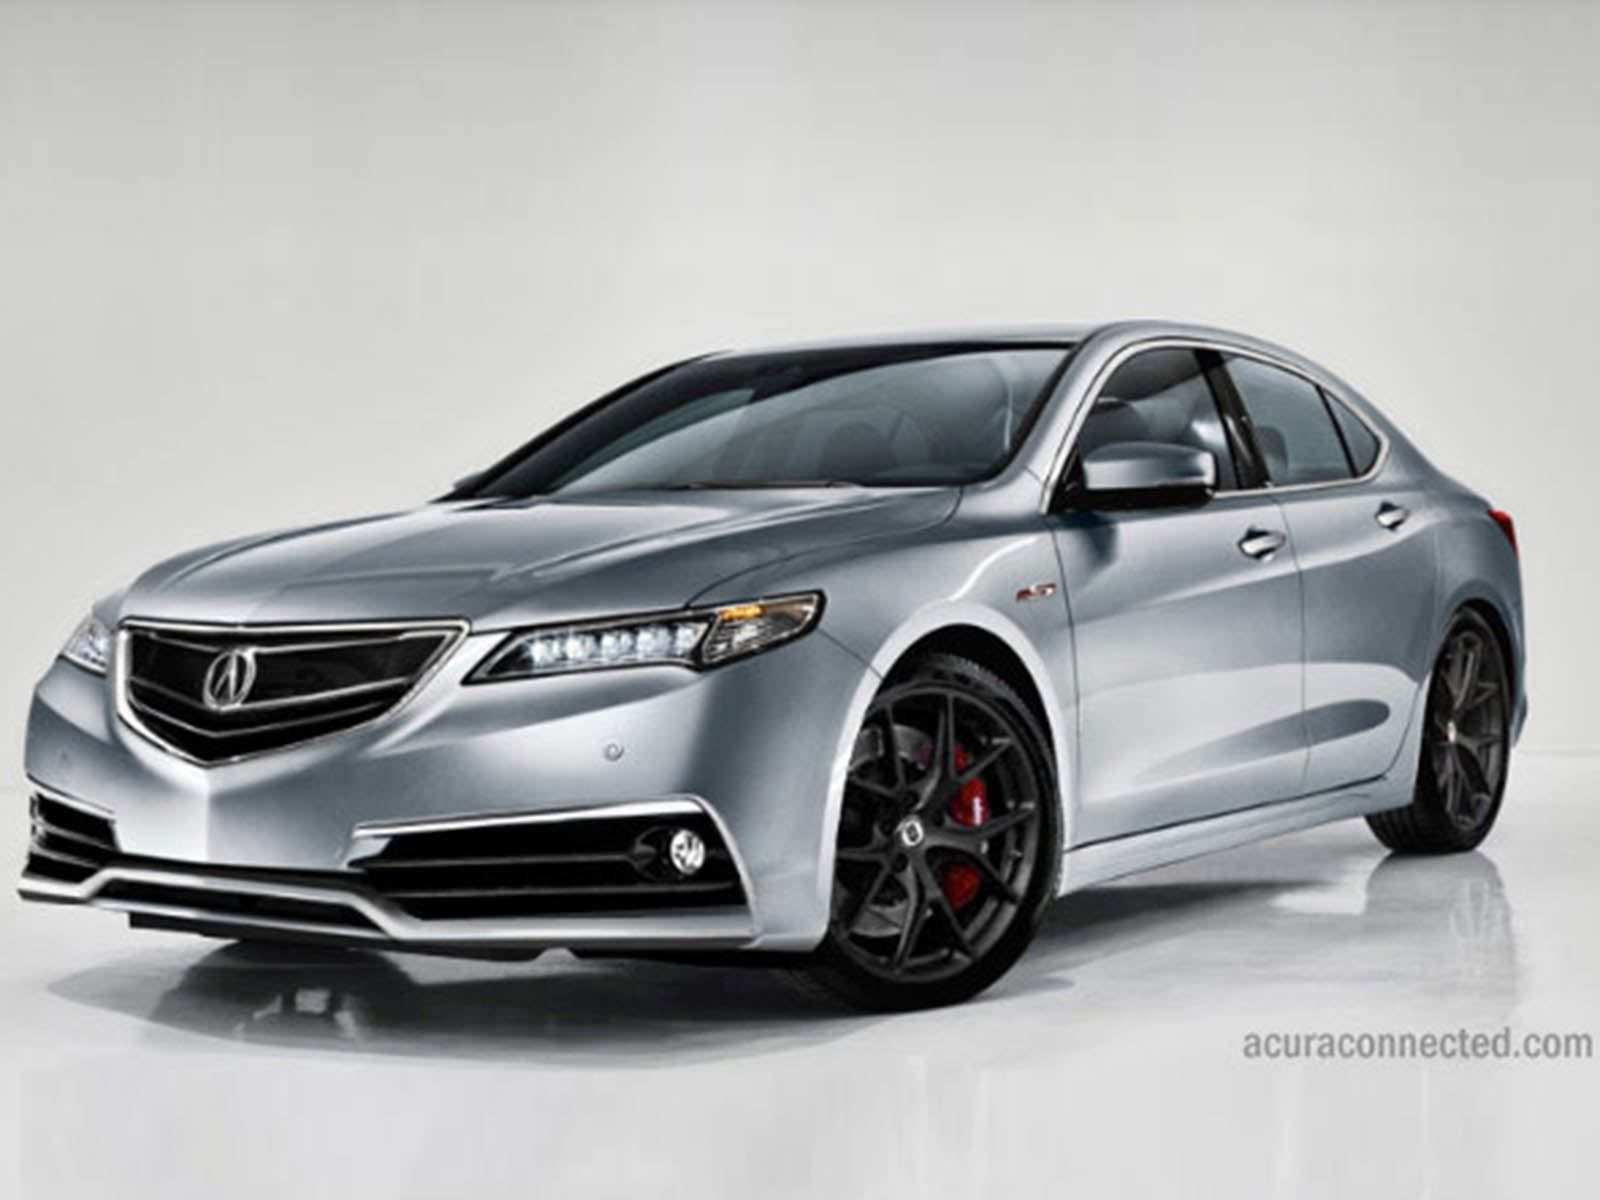 25 Great 2020 Acura Cars Style for 2020 Acura Cars